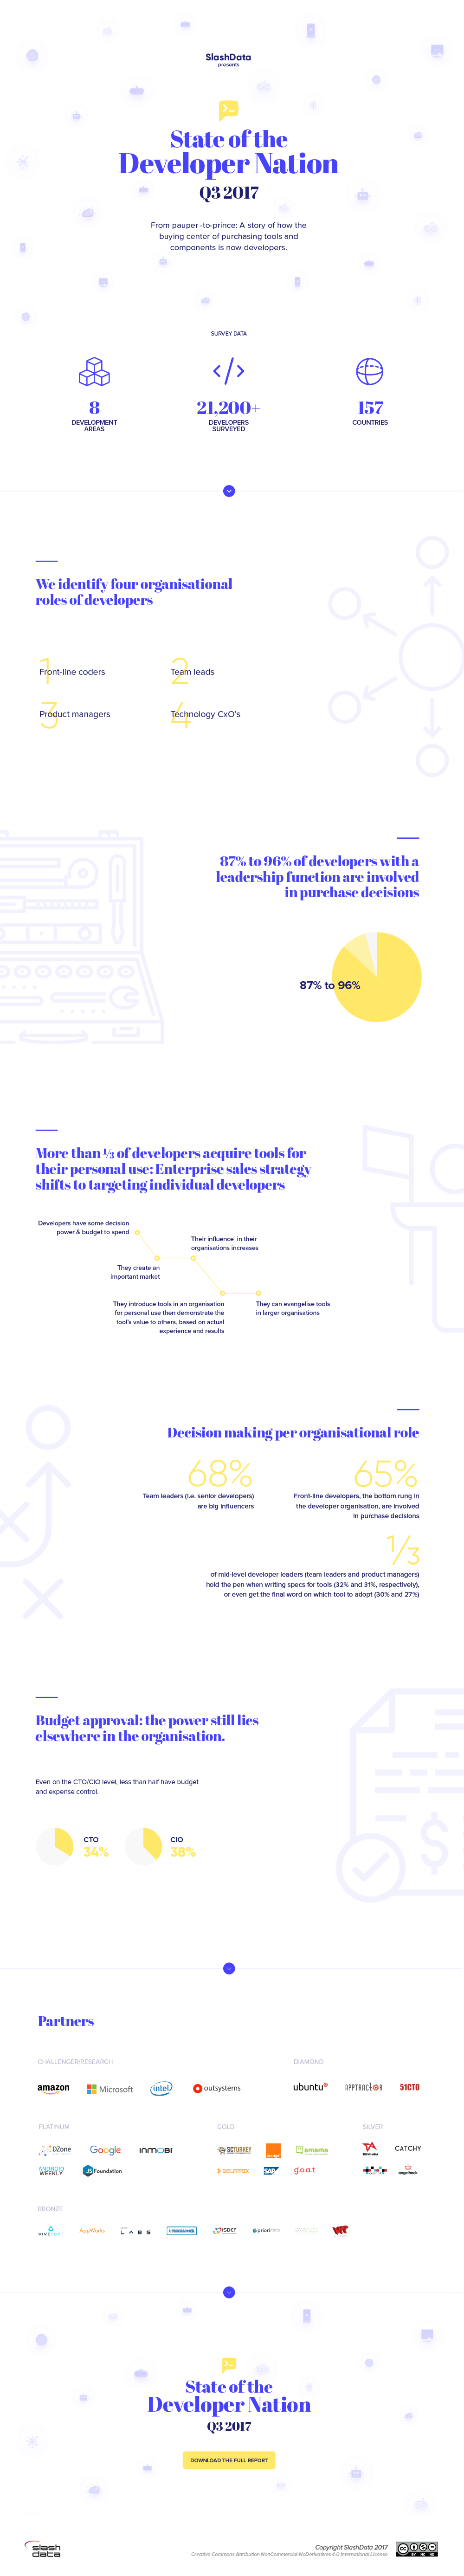 infographic developers decision makers